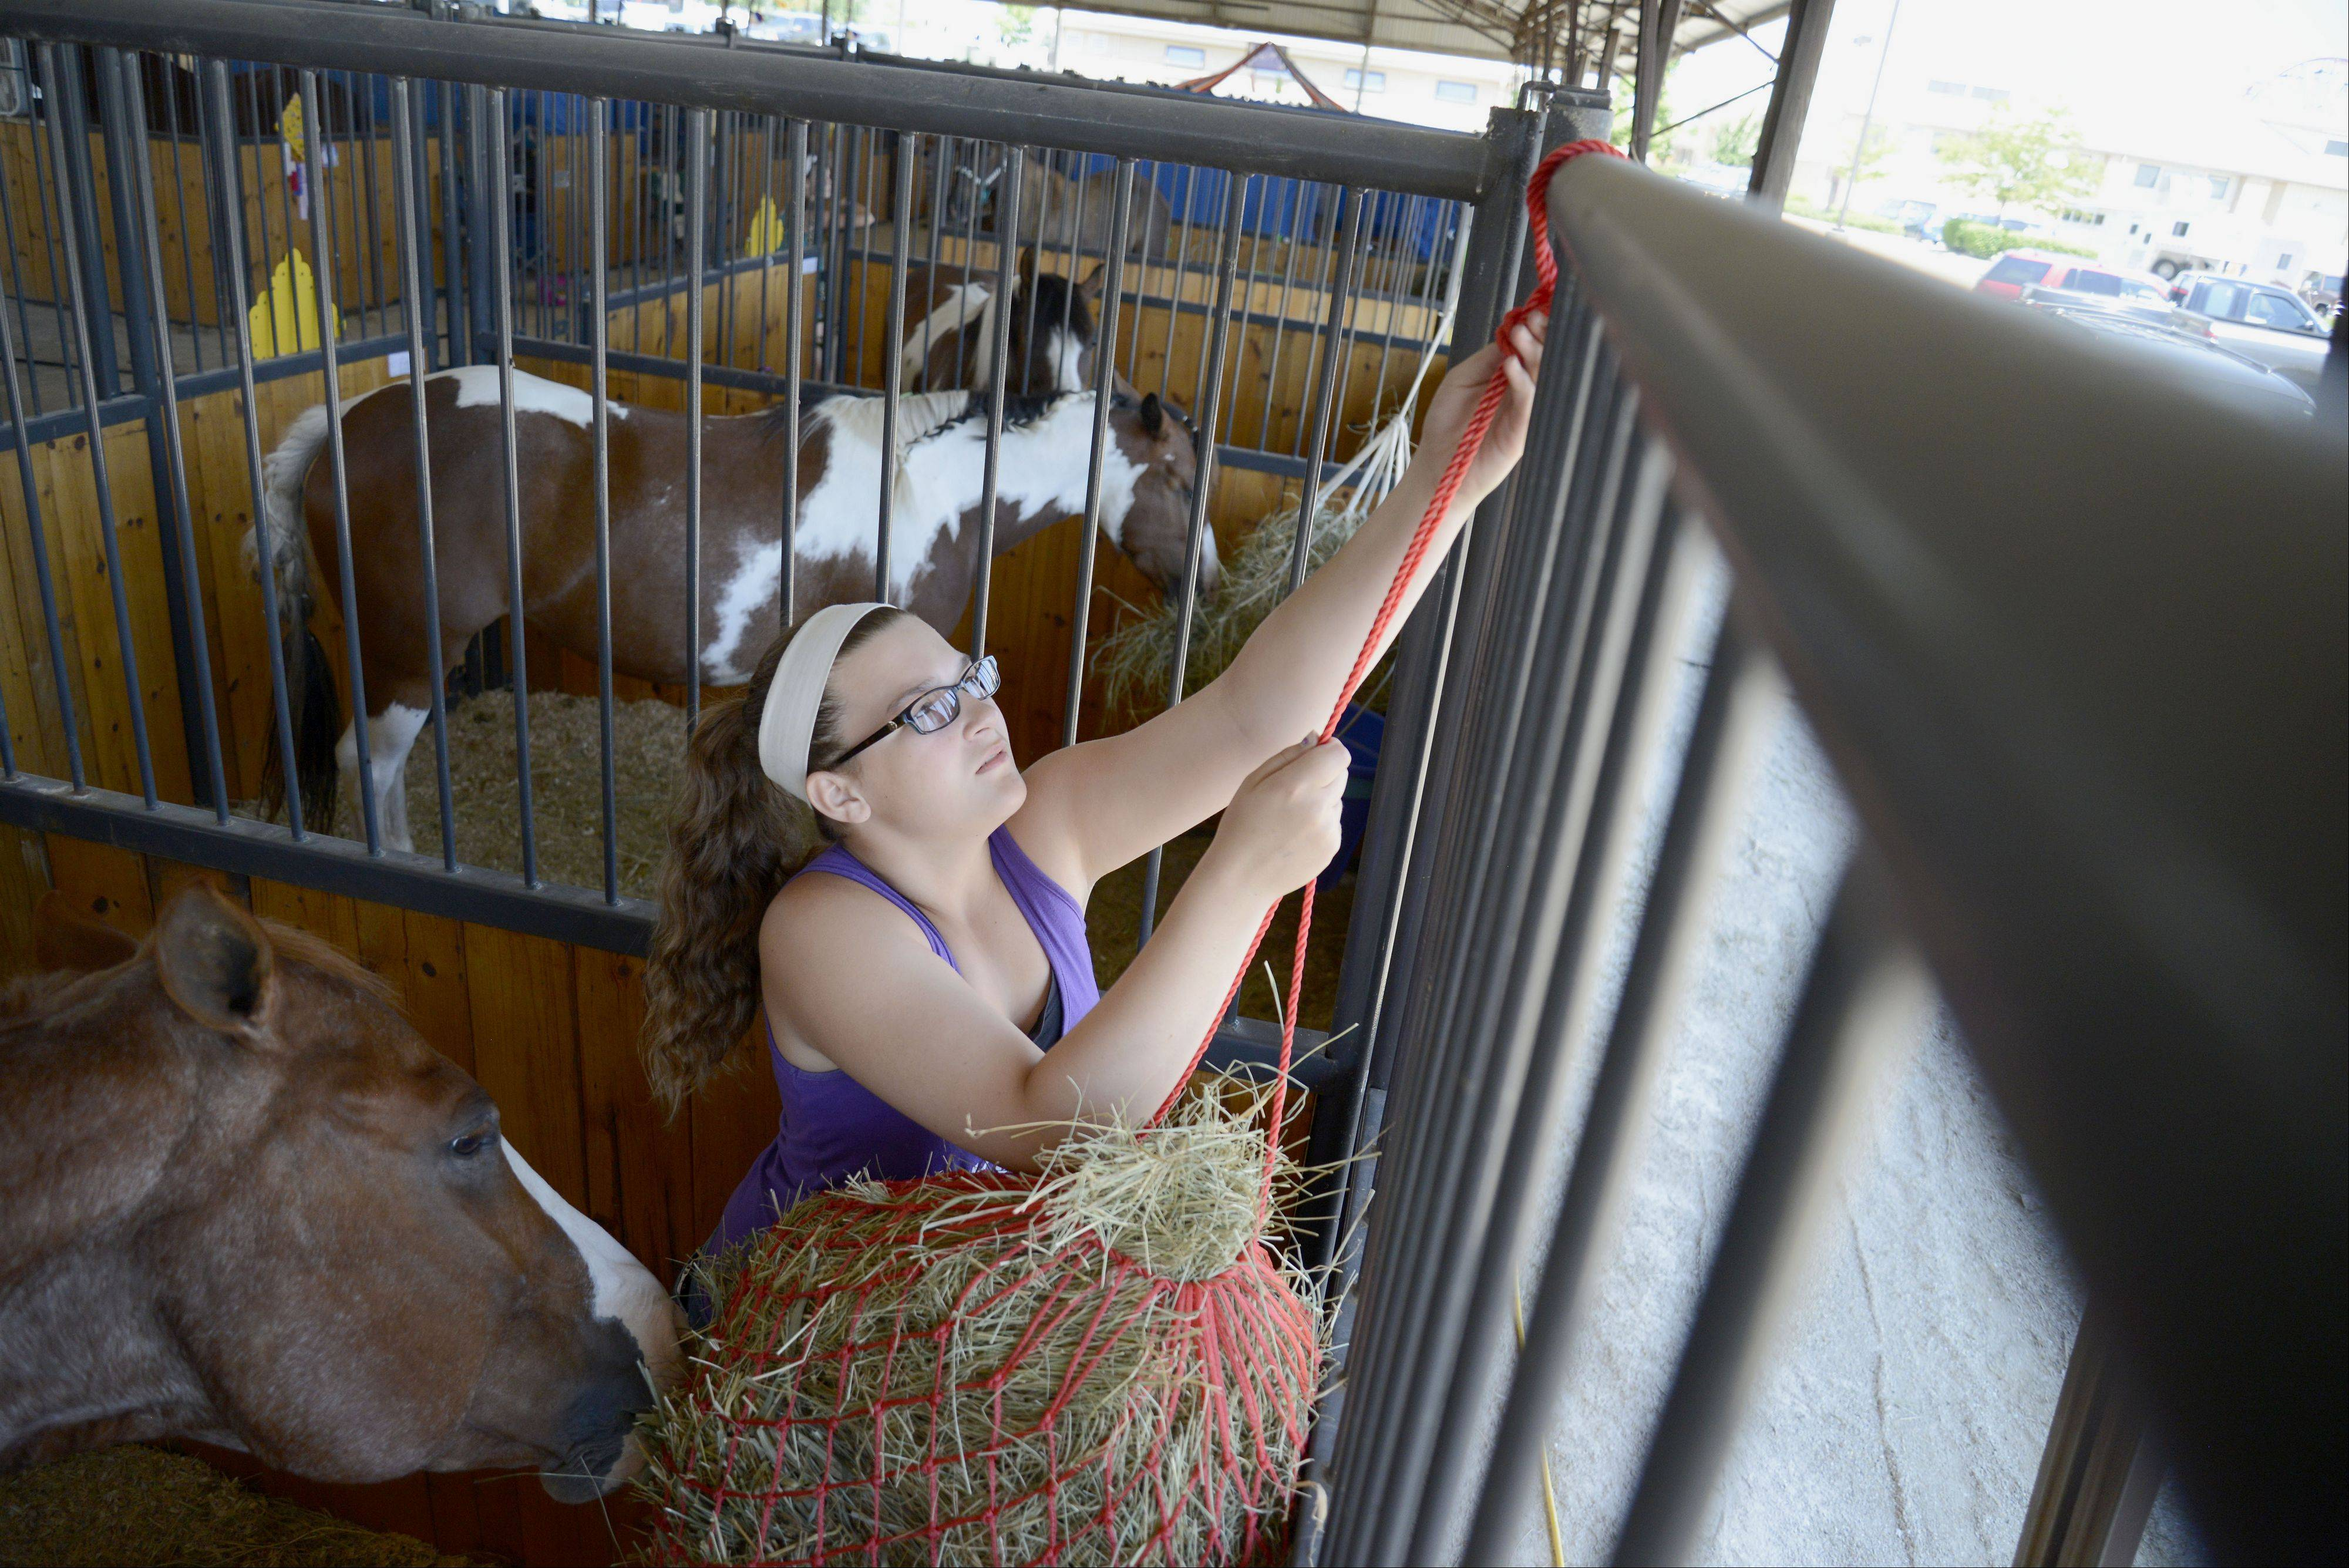 Lydia Sabanish, 12, of Cortland, hoists up a hay net for a horse named Hondo on Saturday at the Kane County Fair in St. Charles. Sabanish is a member of the Y-Not 4-H group out of Maple Park.